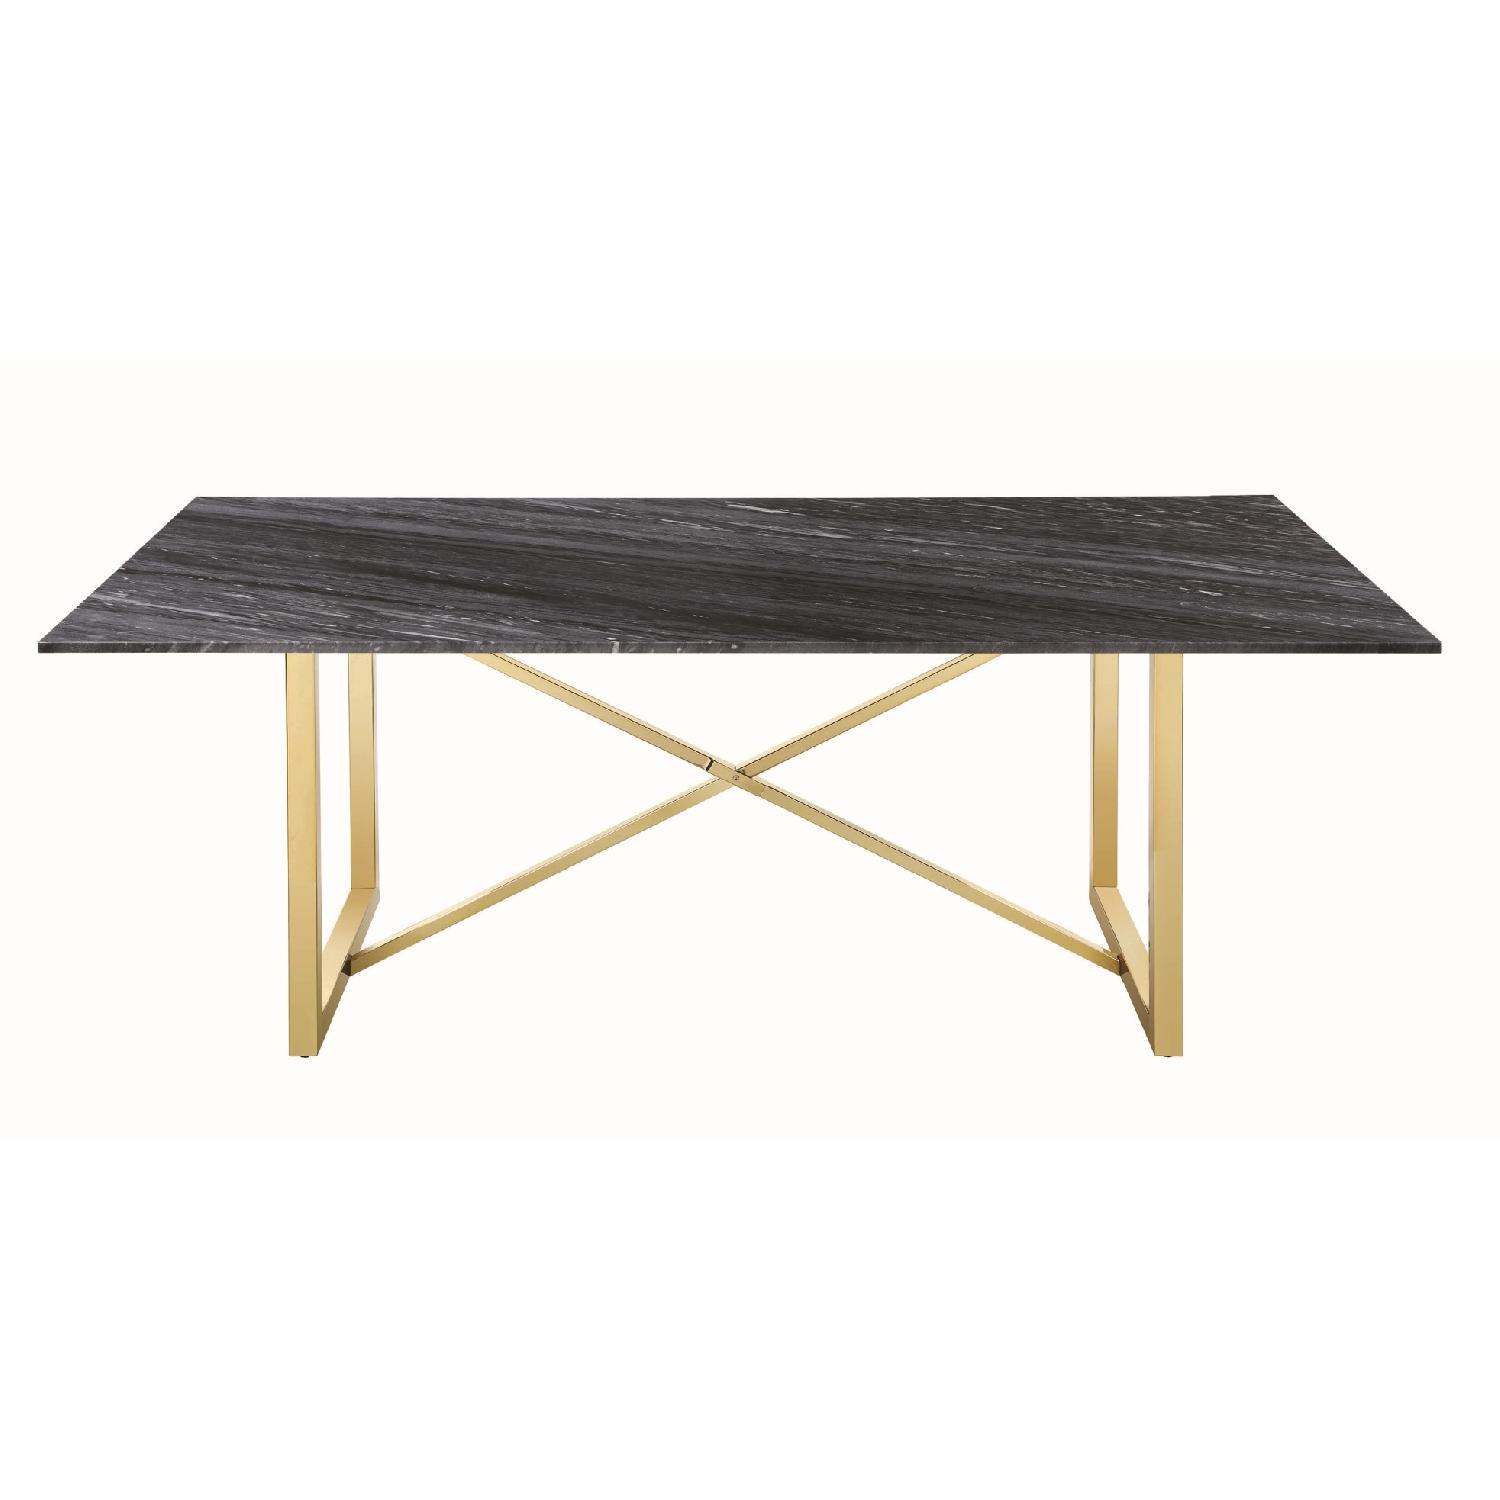 Dining Table w/ Black-Grey Marble Top & Gold Legs